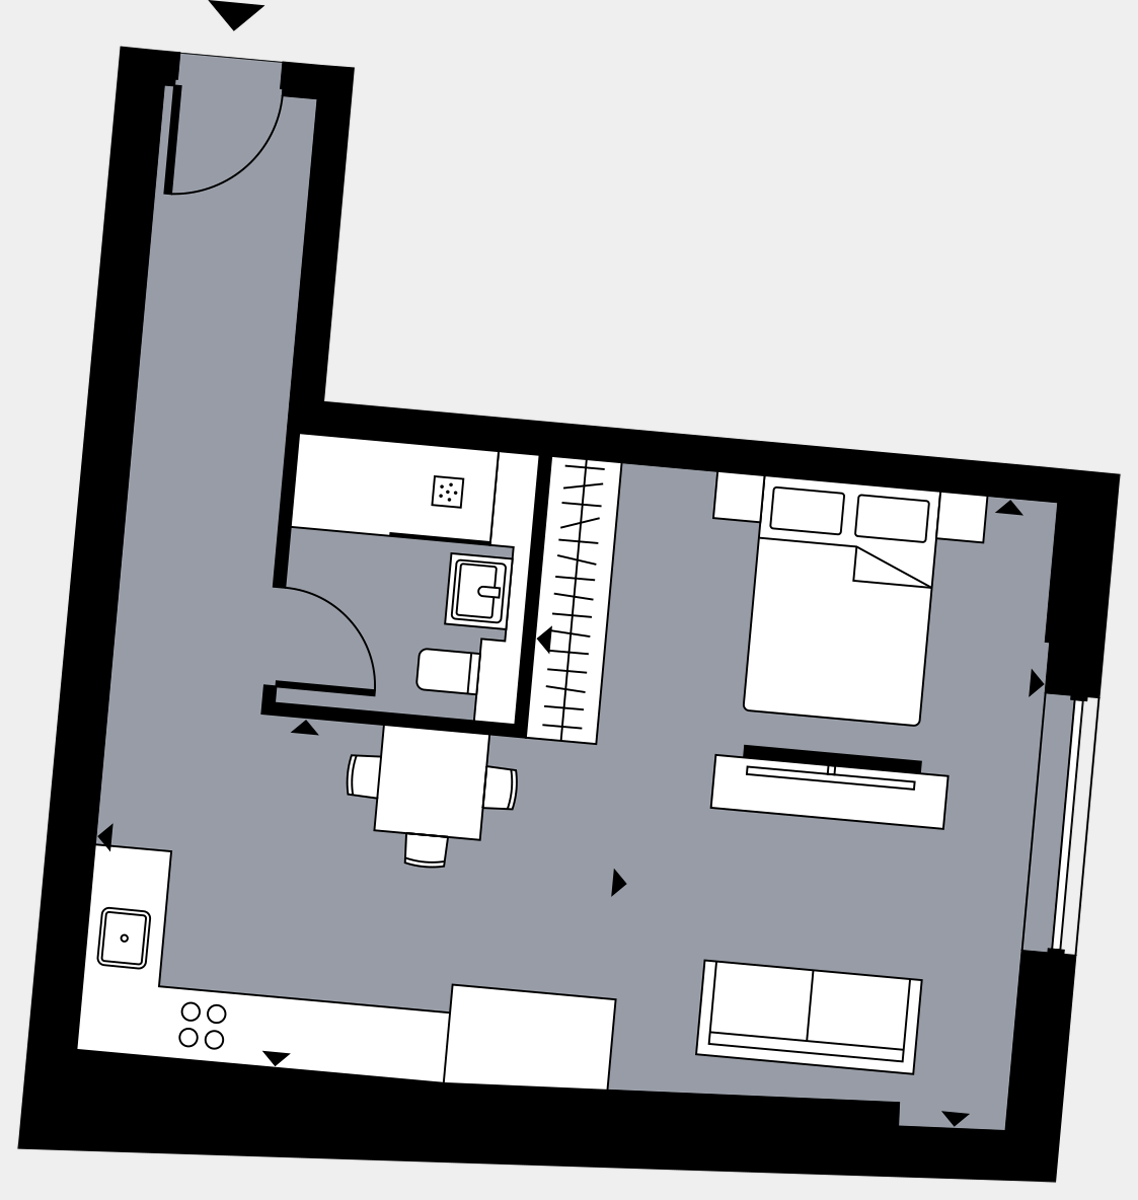 Brigade Court London SE1 Apartment floorplan - L3 28 Davies House